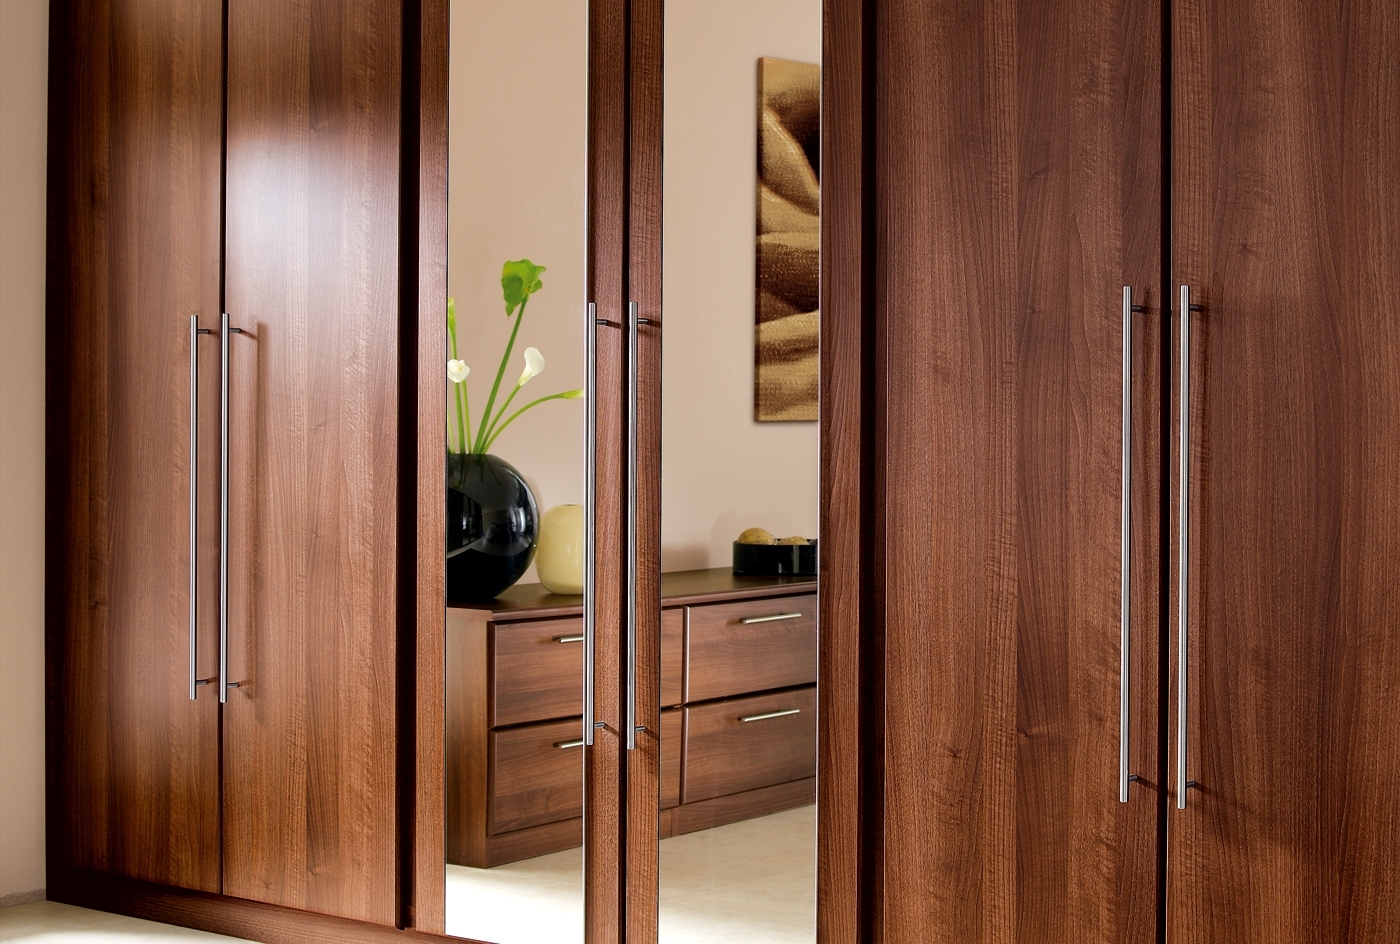 Mirror Wardrobe Doors Are A Wonderful Feature Of The Fitted Regarding Preferred Wardrobes With Mirror (View 7 of 15)